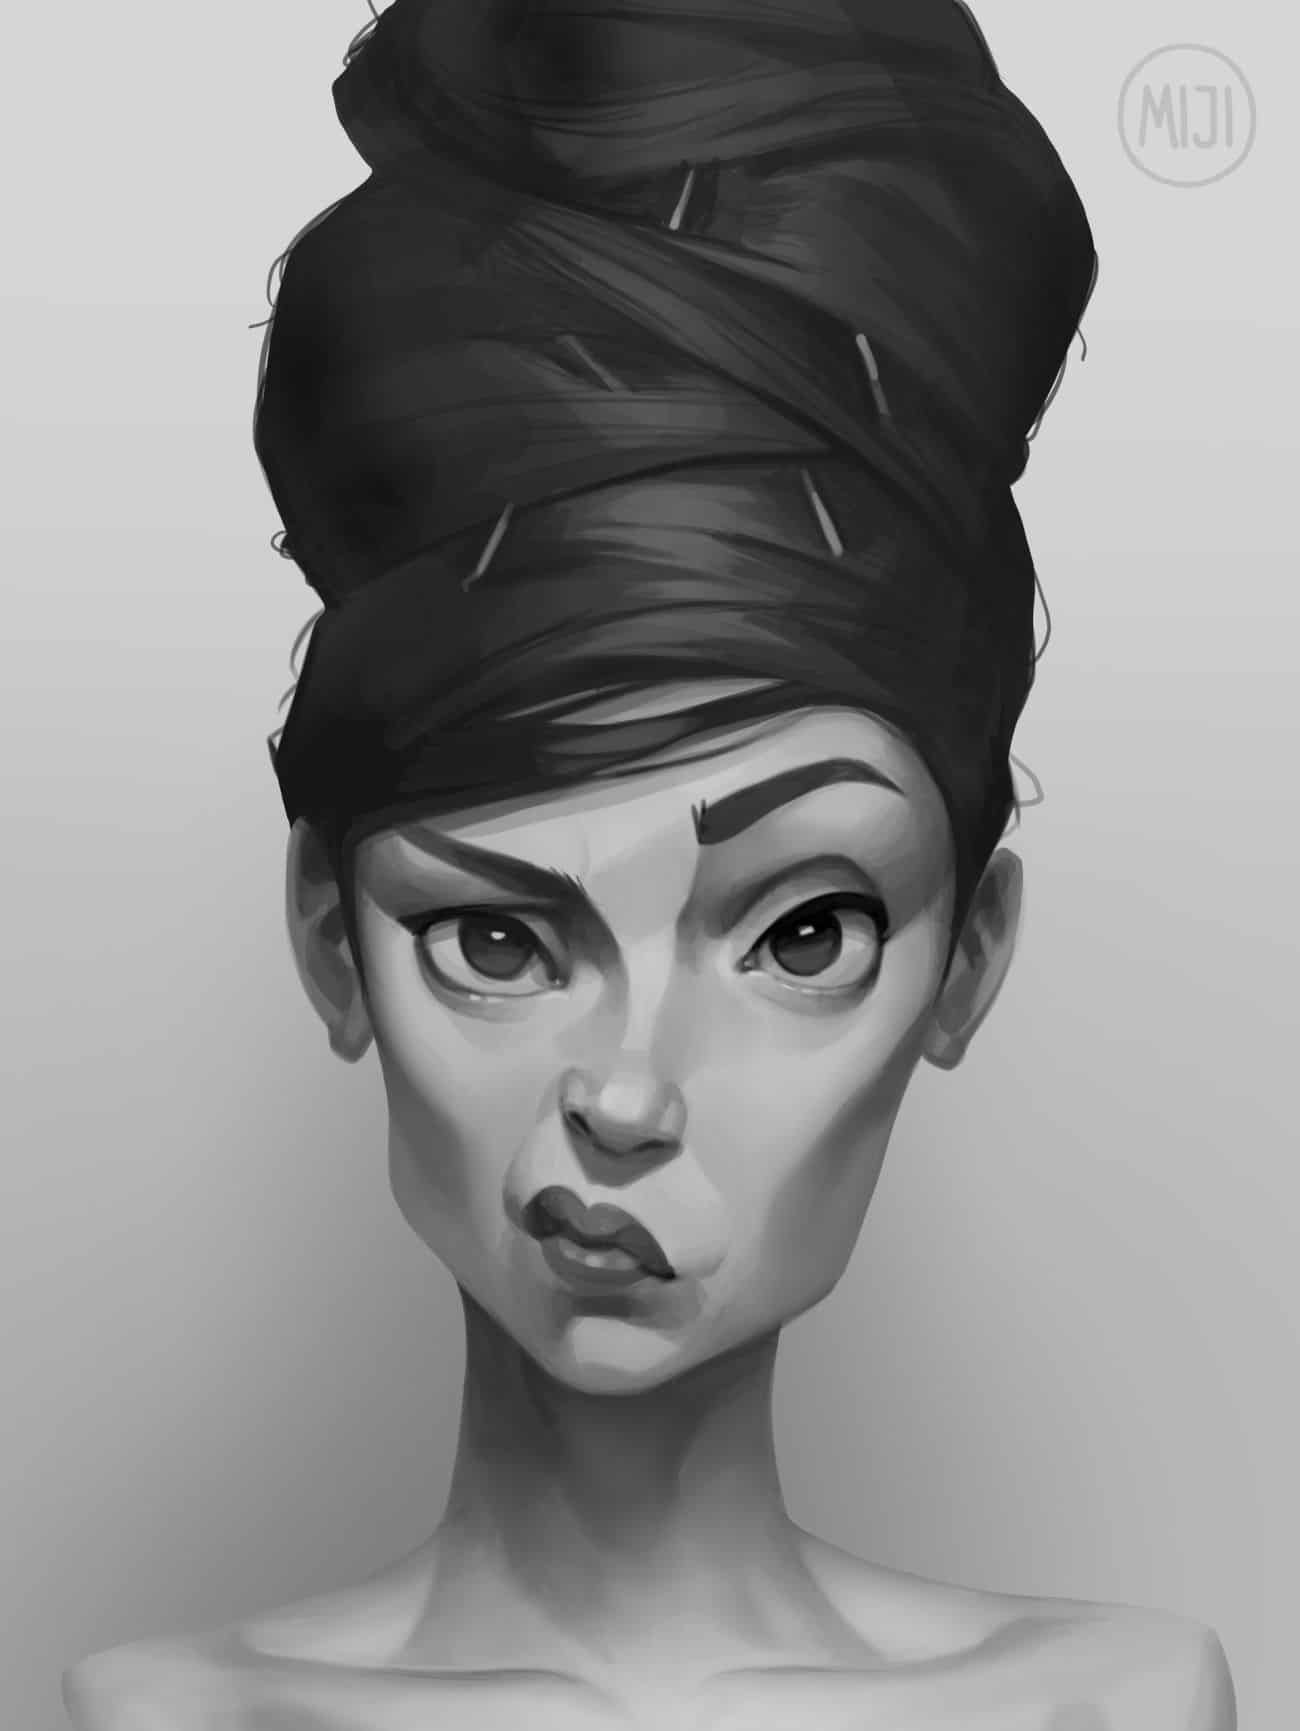 Digital Painting Process Pictures (Step-By-Step)